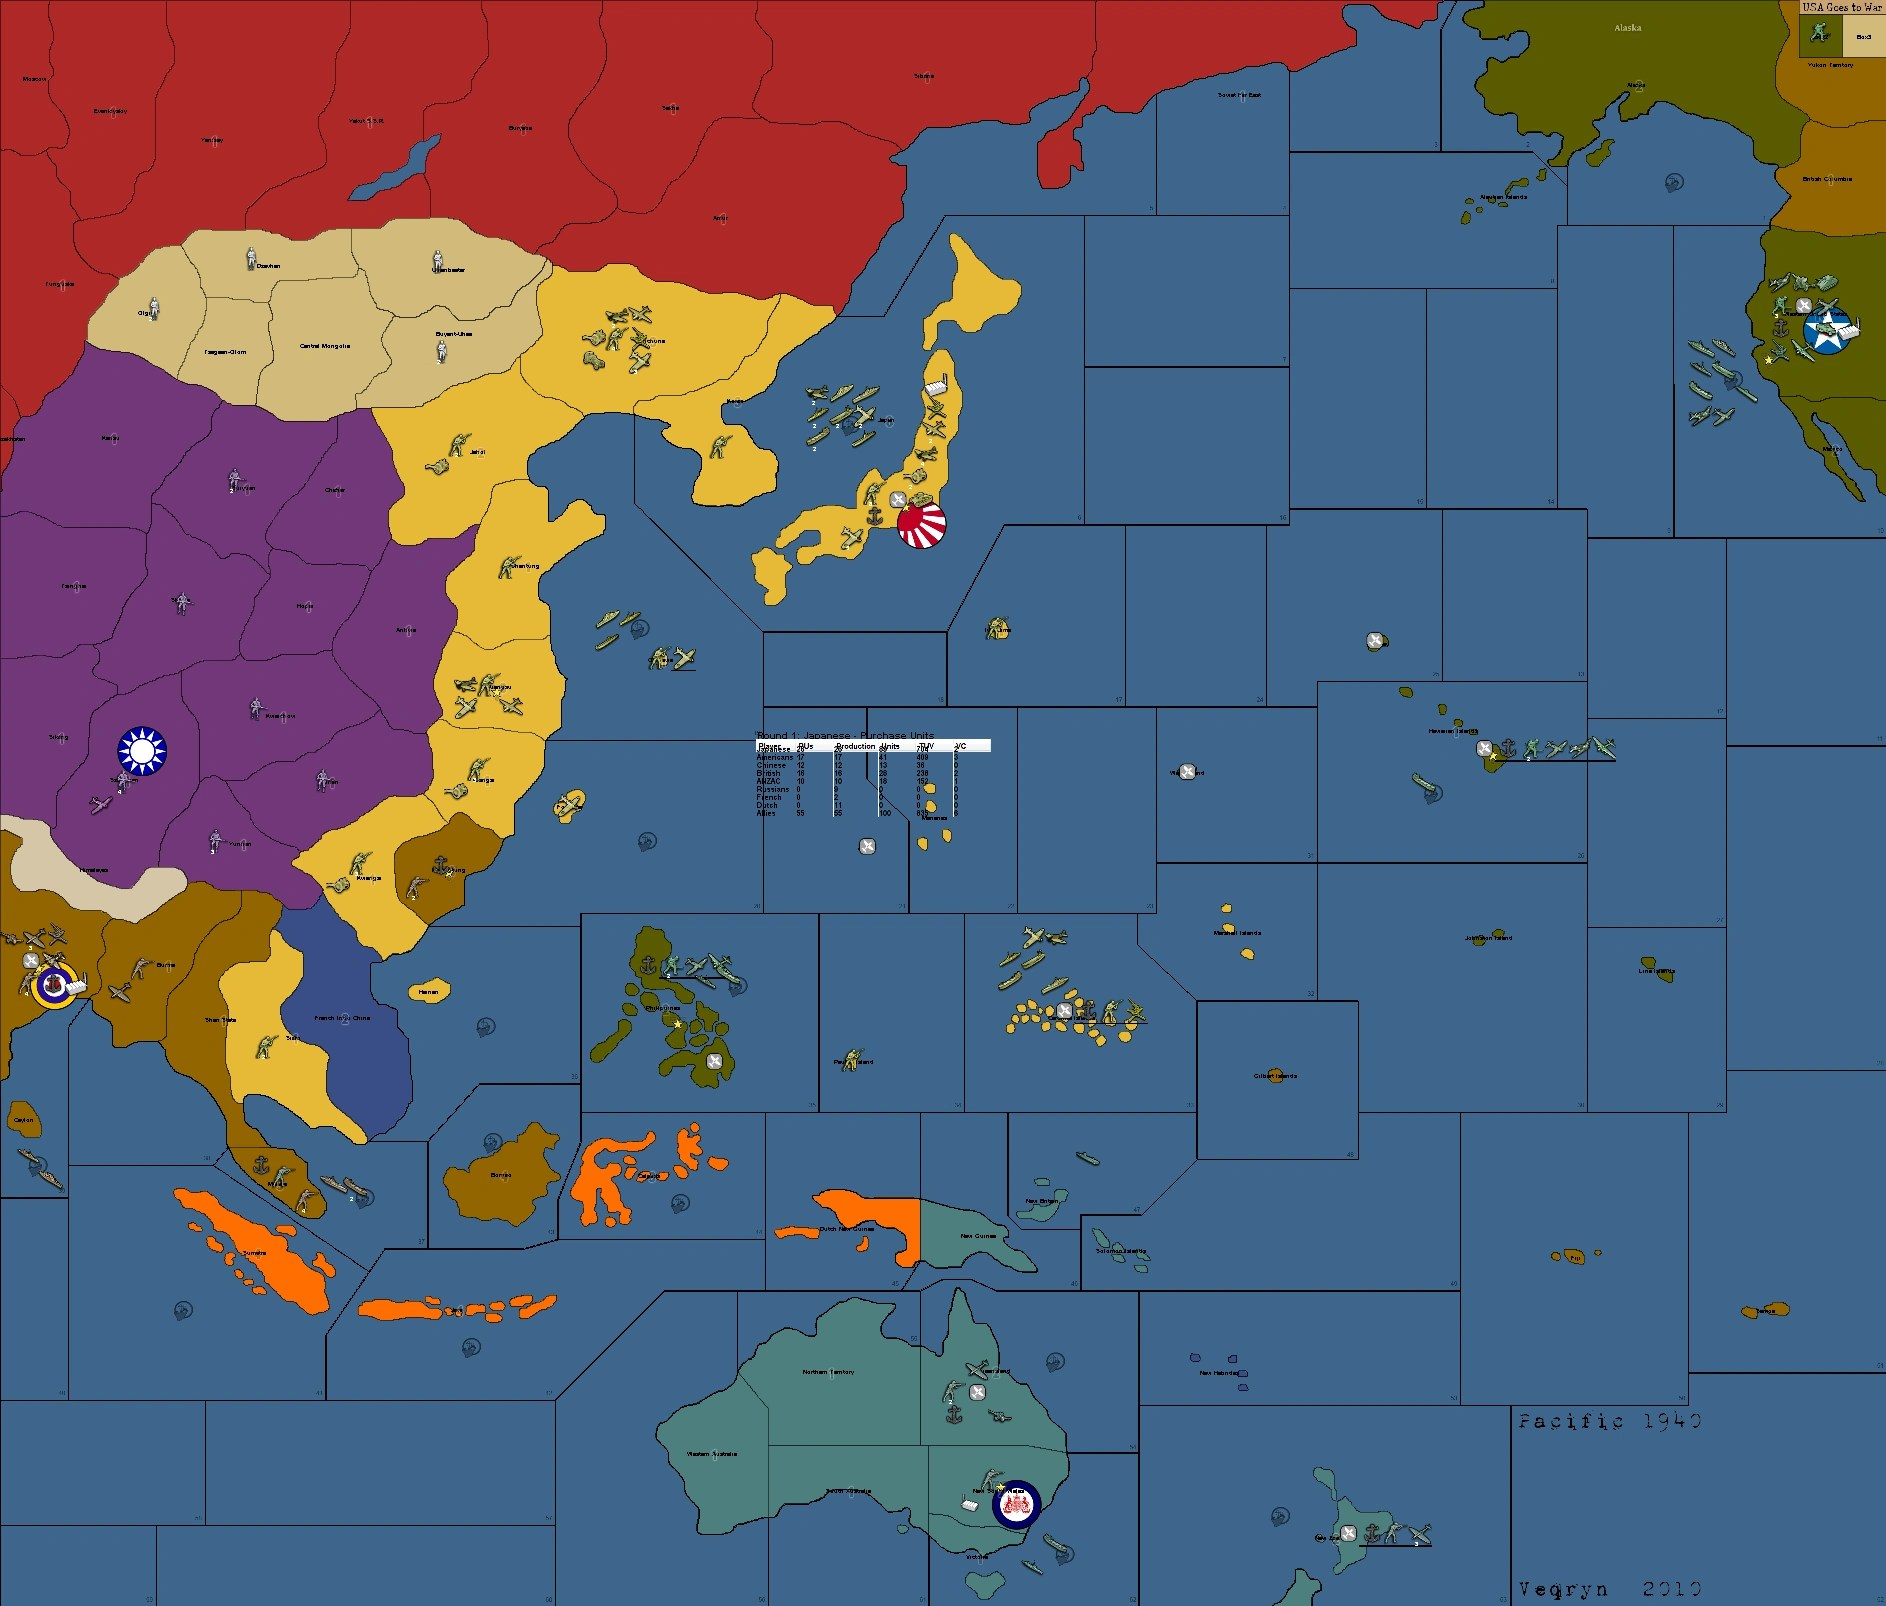 20+ Wwii Pacific War Map Pictures and Ideas on Meta Networks